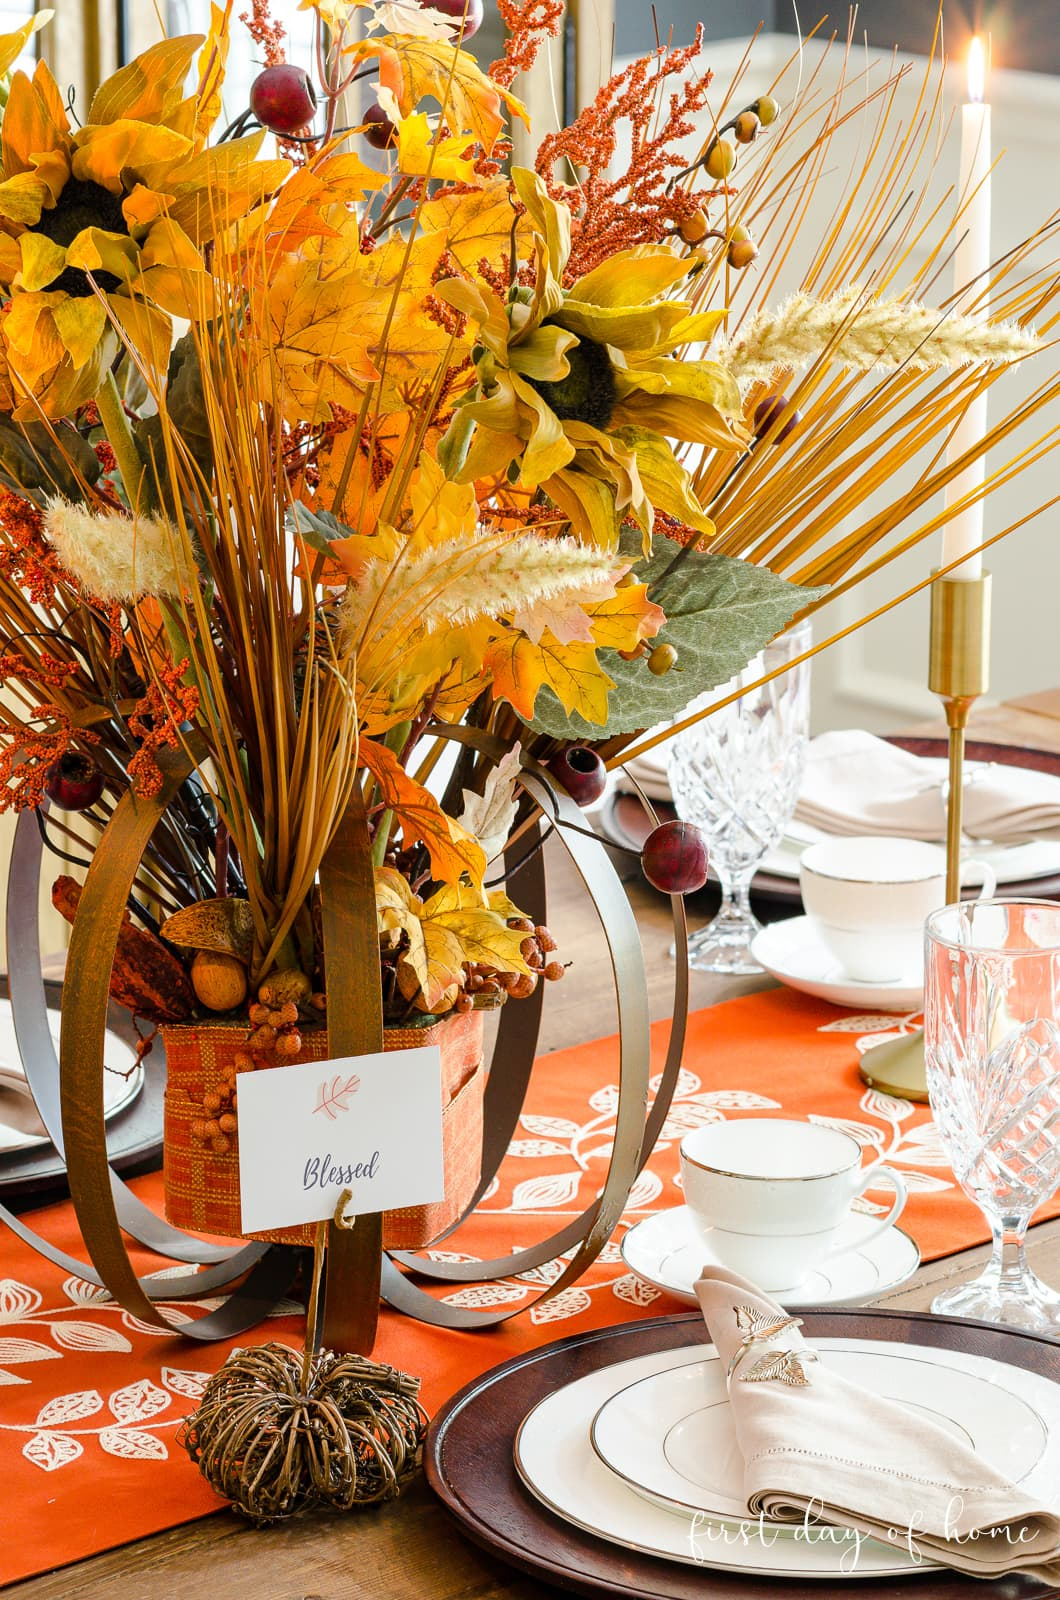 Fall formal dining room centerpiece with orange and yellow fall foliage and DIY pumpkin place card holders